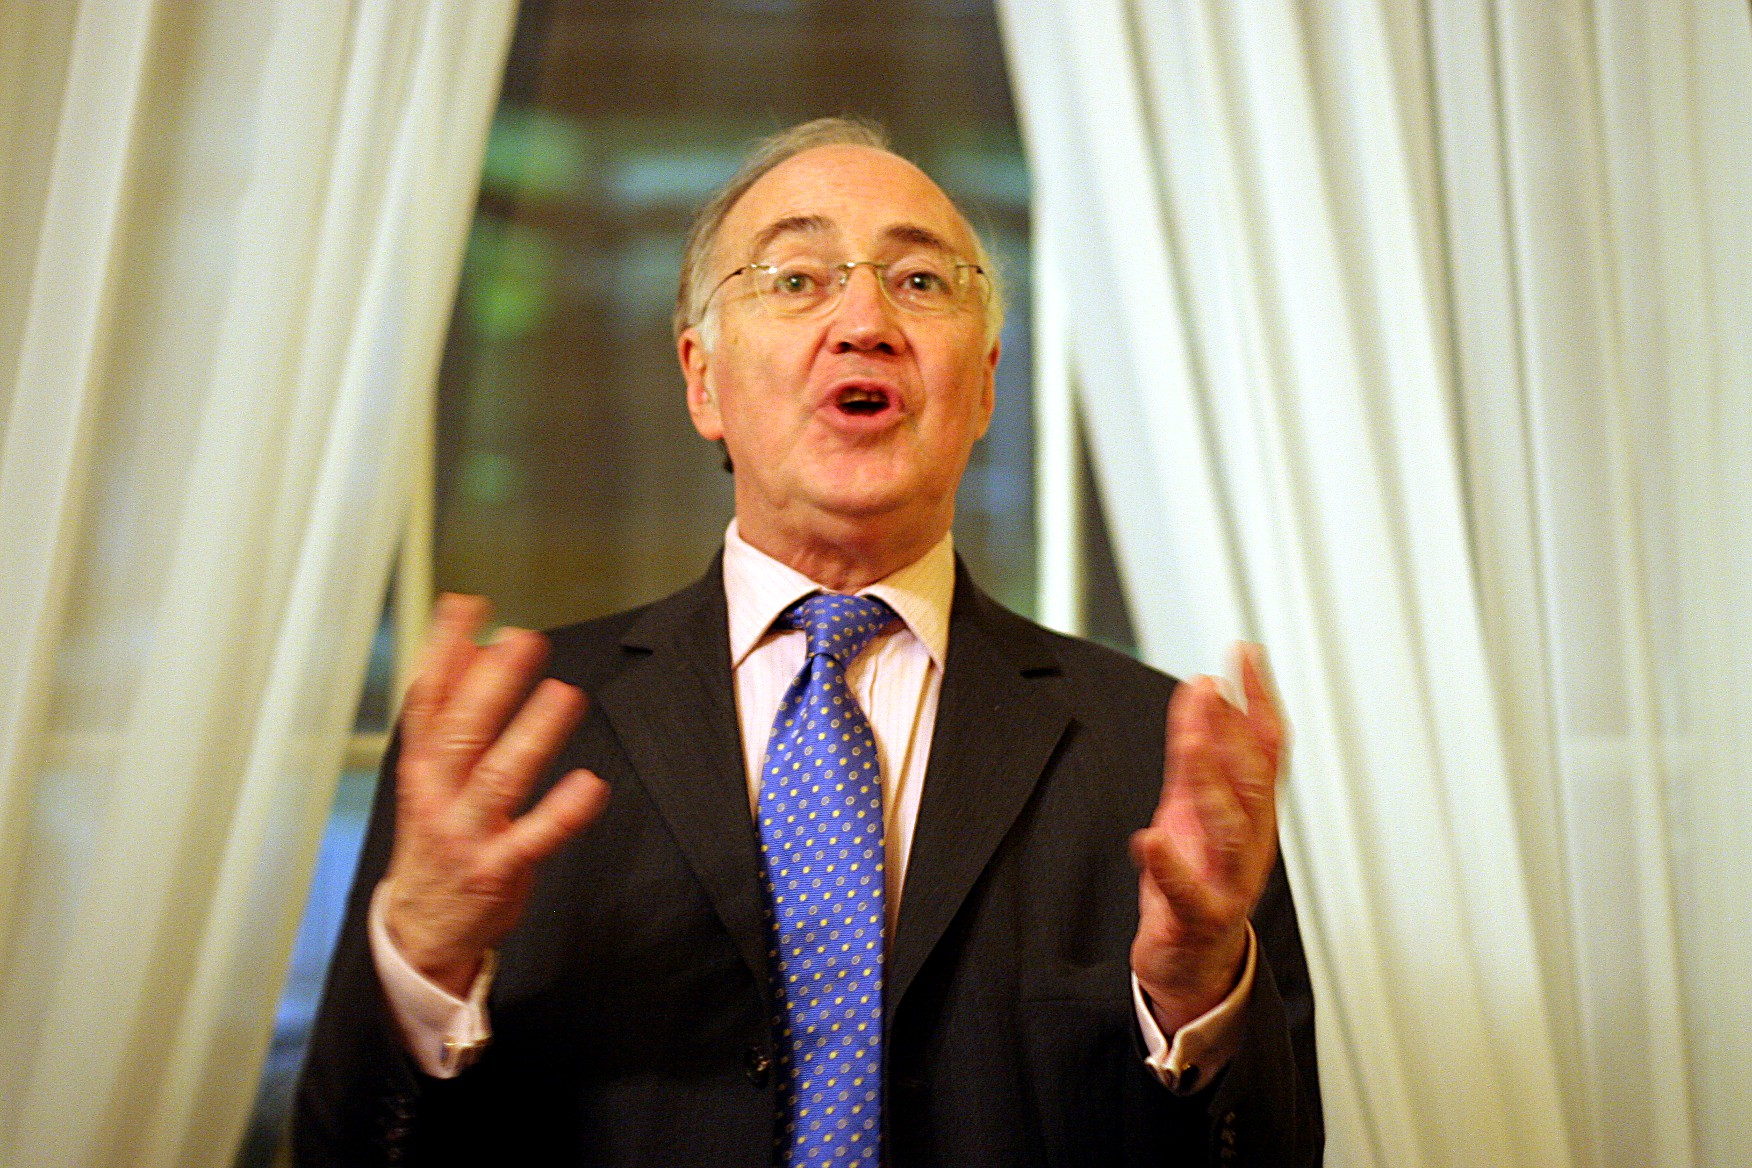 Michael Howard MP Declared his Intention to Stand for the Leadership of the Conservative Party